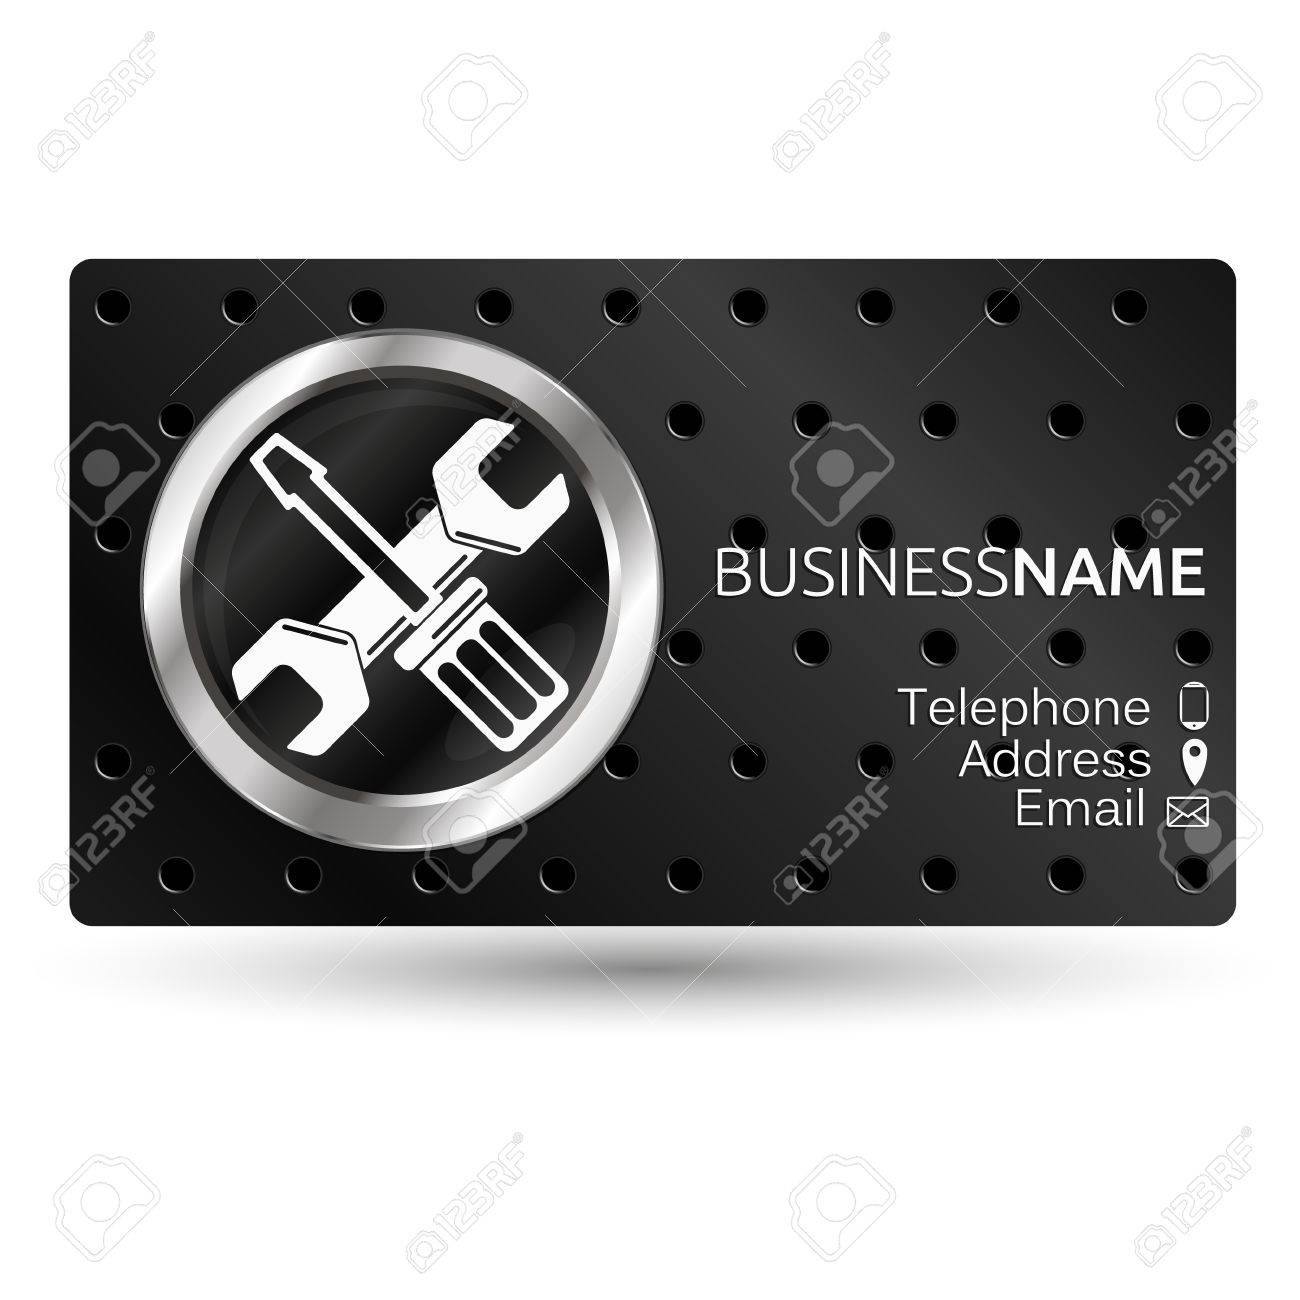 Business Card For Repair Screwdriver And Wrench Royalty Free